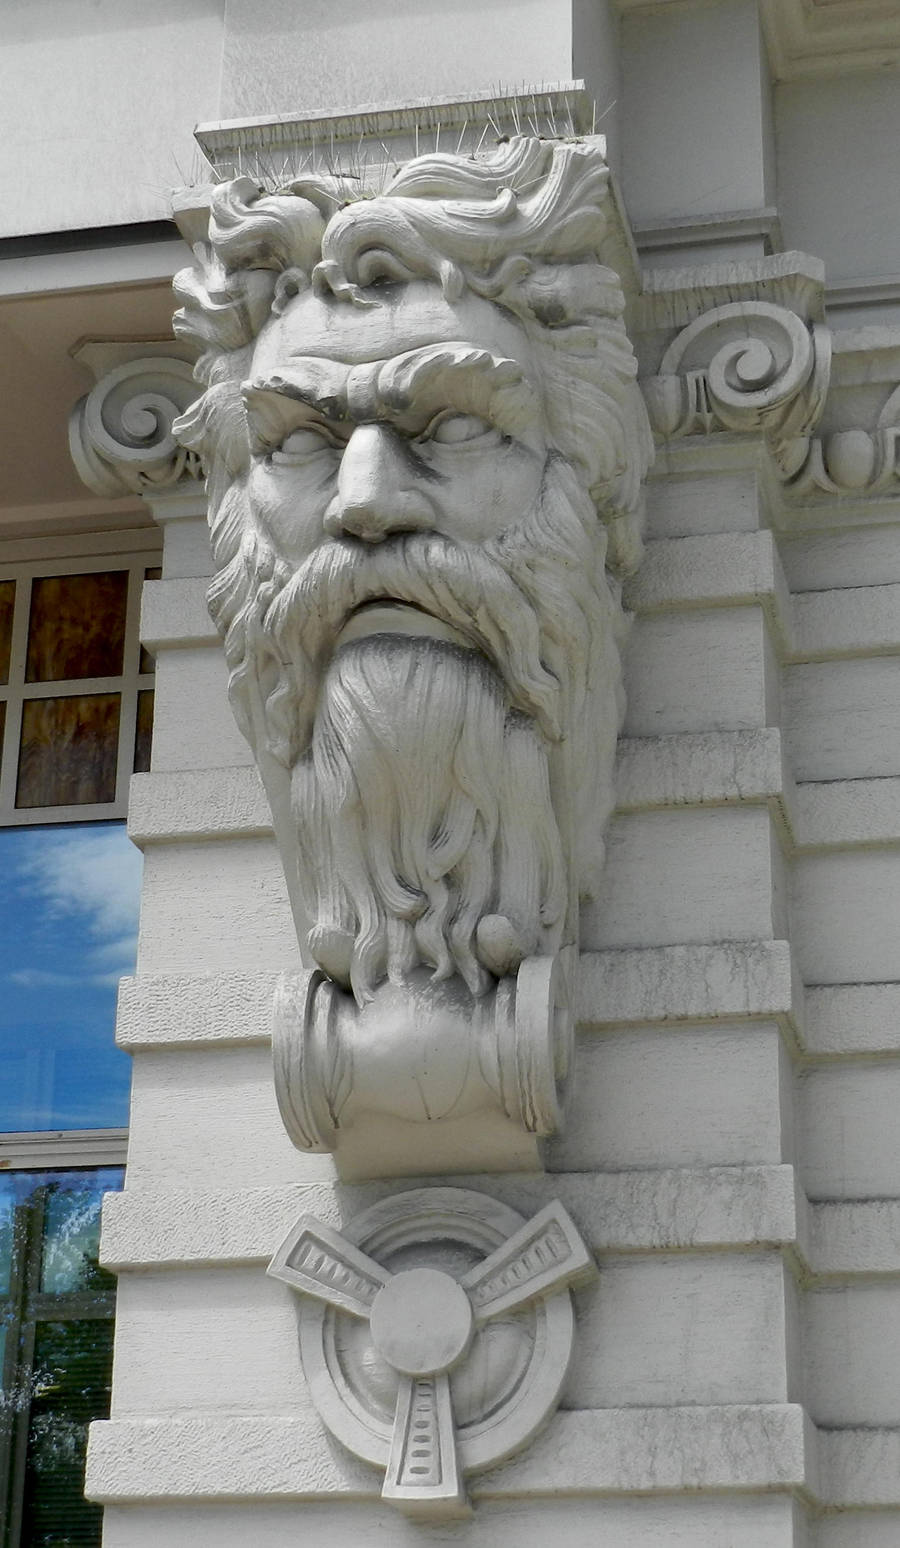 Stone Carved Man Face on Building by EveyD